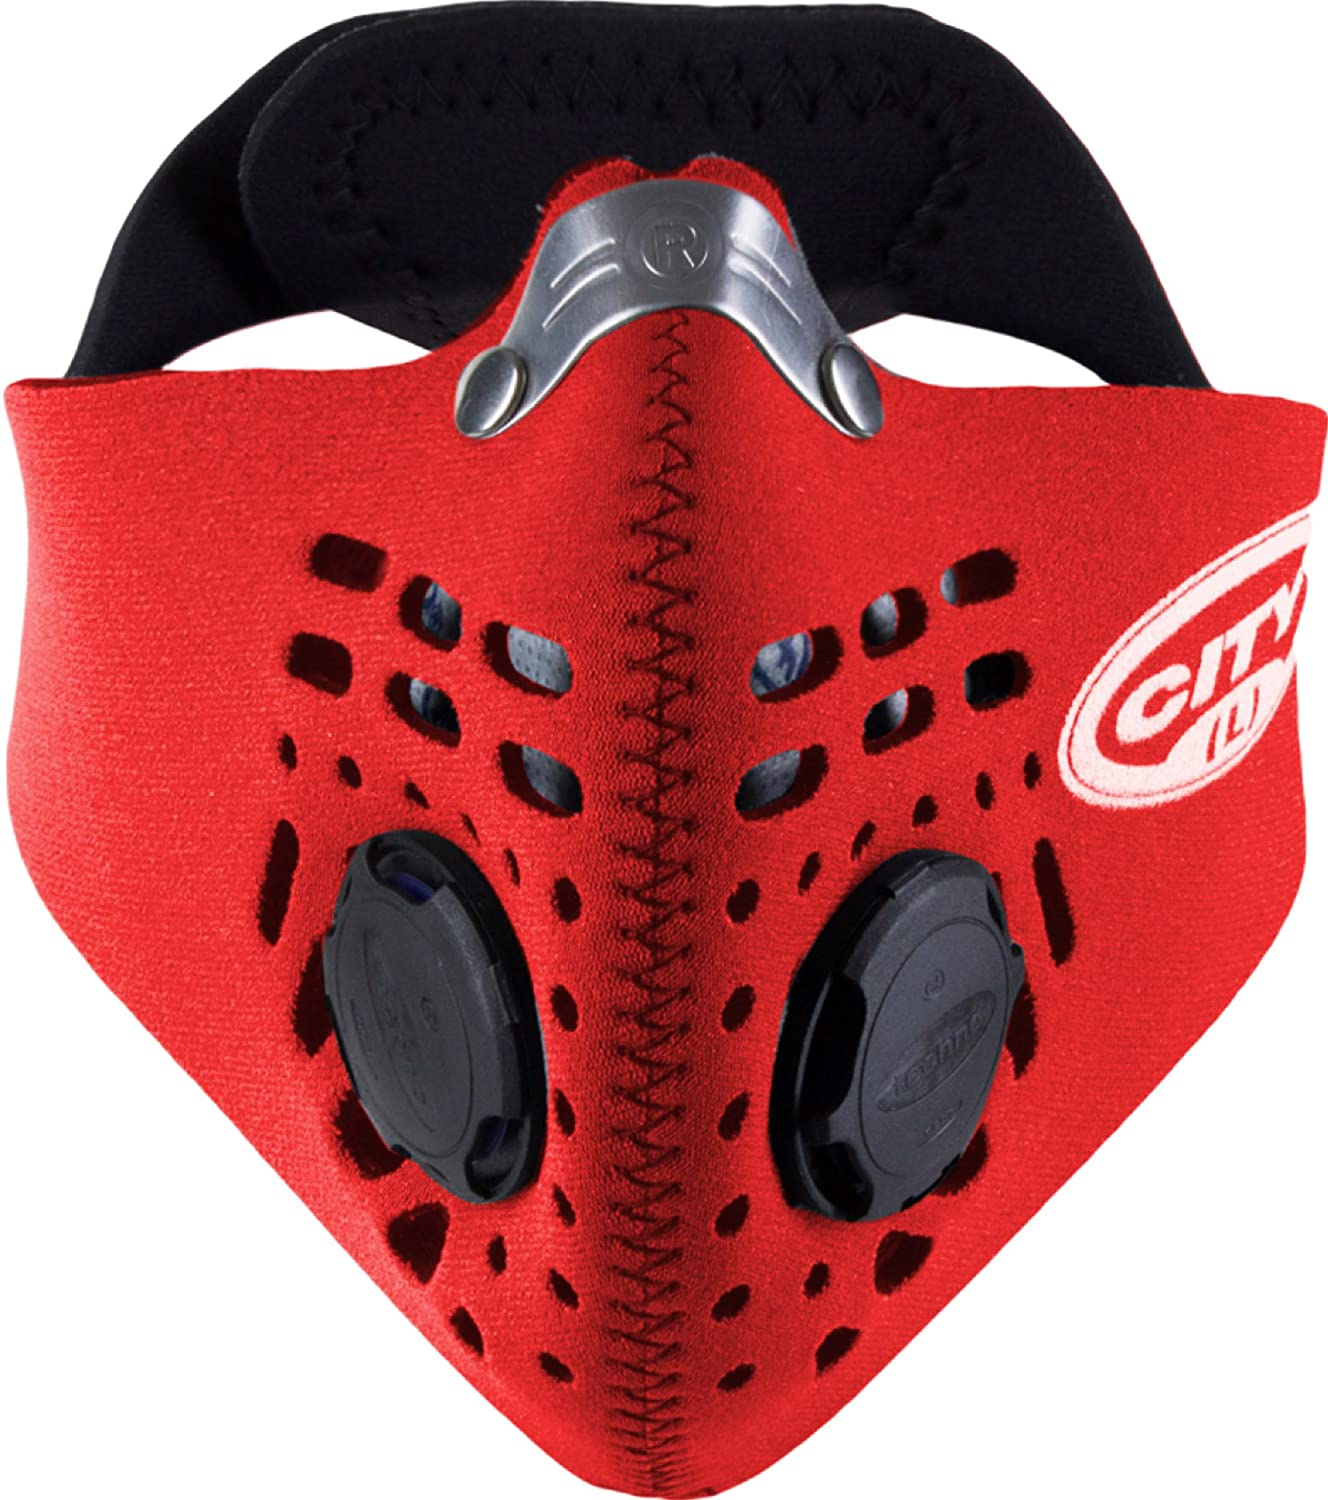 2013 Respro Anti-Pollution & Allergy Mask City Red Large   B006WG4KXY